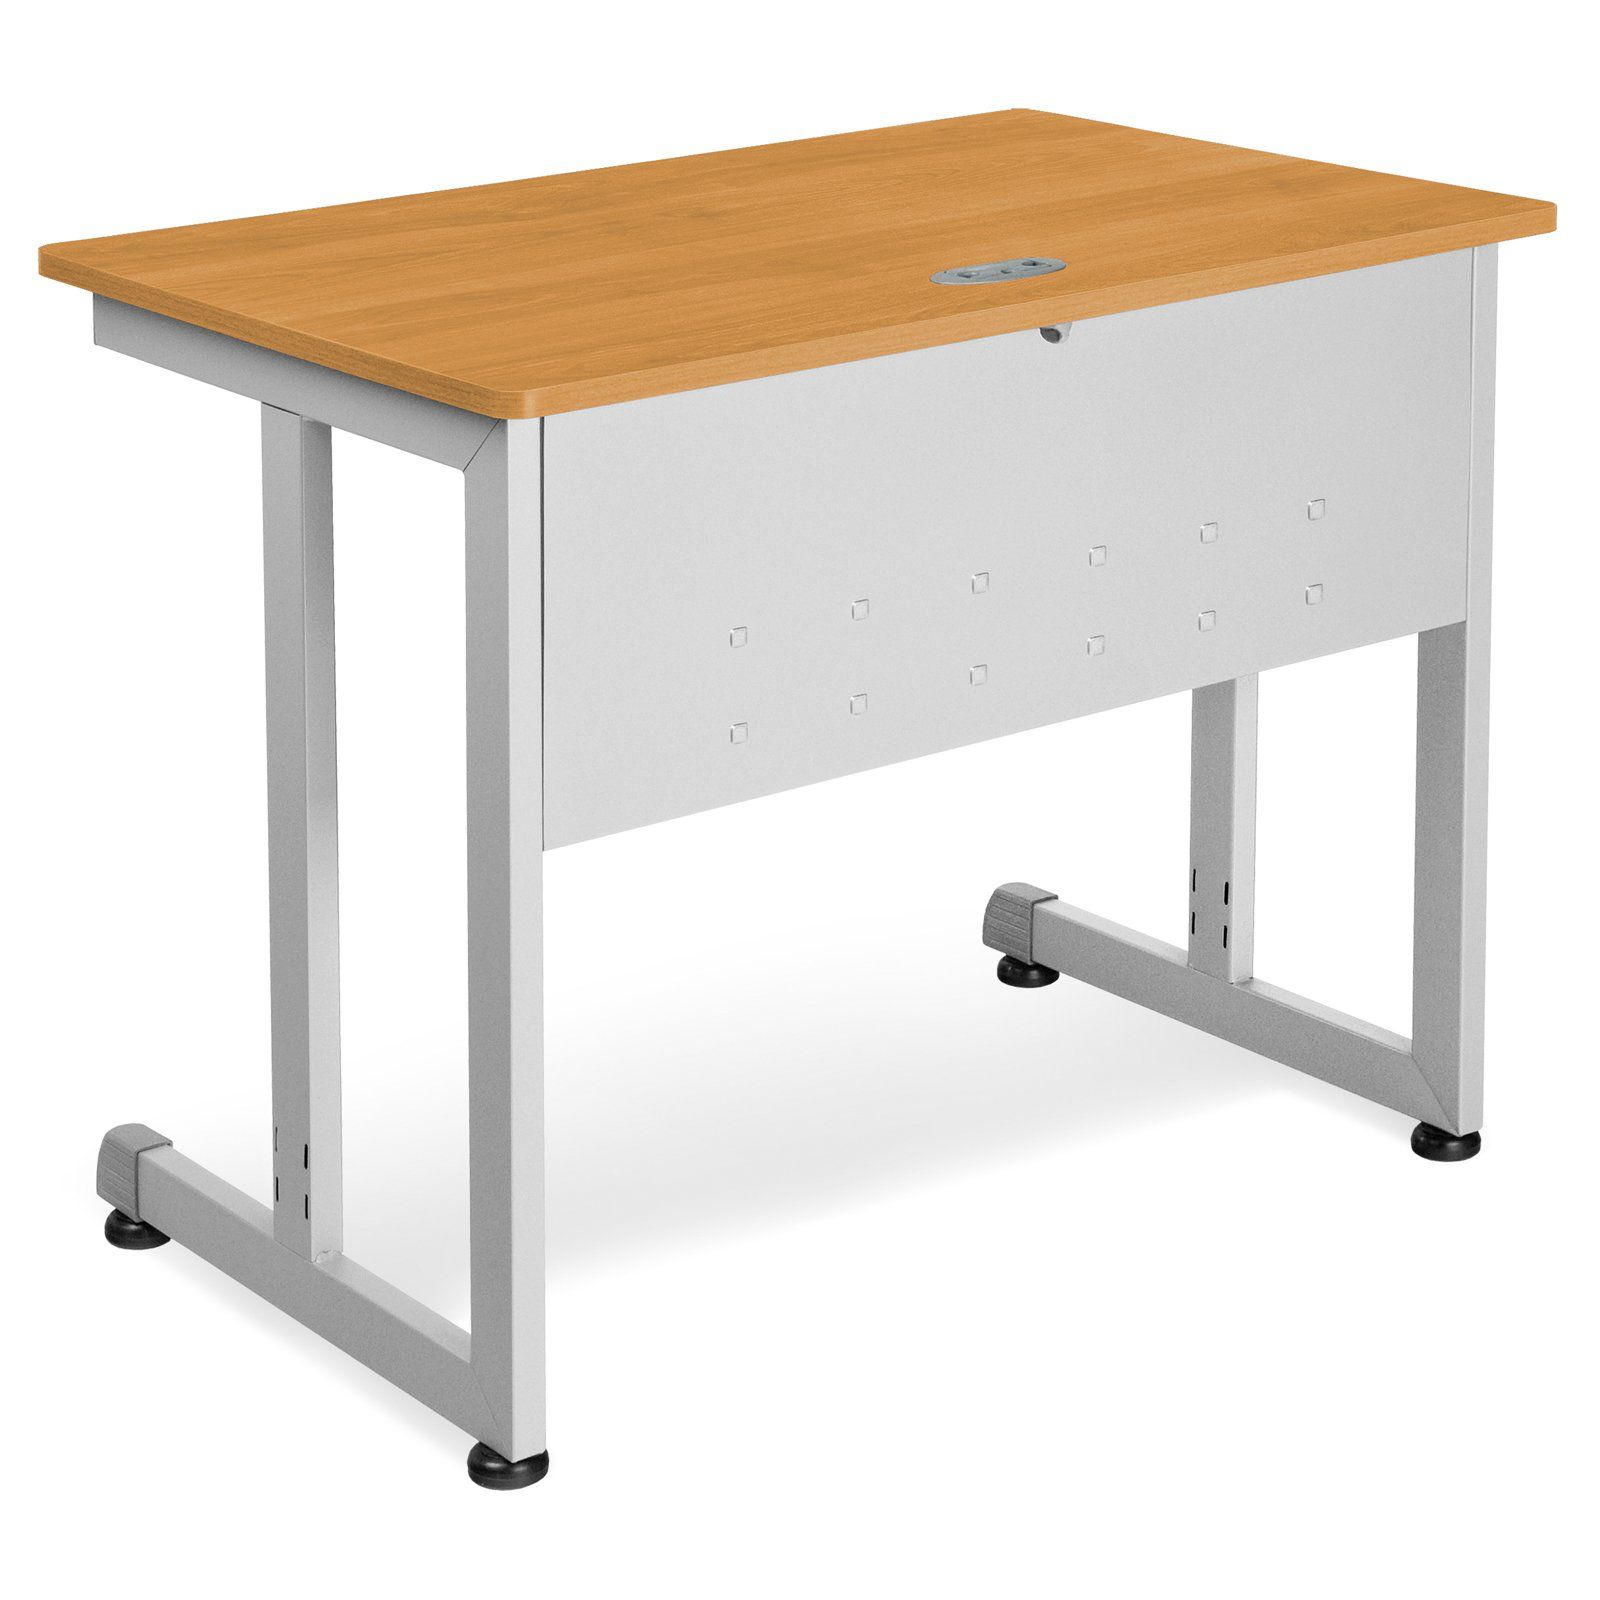 Incroyable OFM Model 55139 Modular 36W X 24D In. Computer Desk In 2019 ...